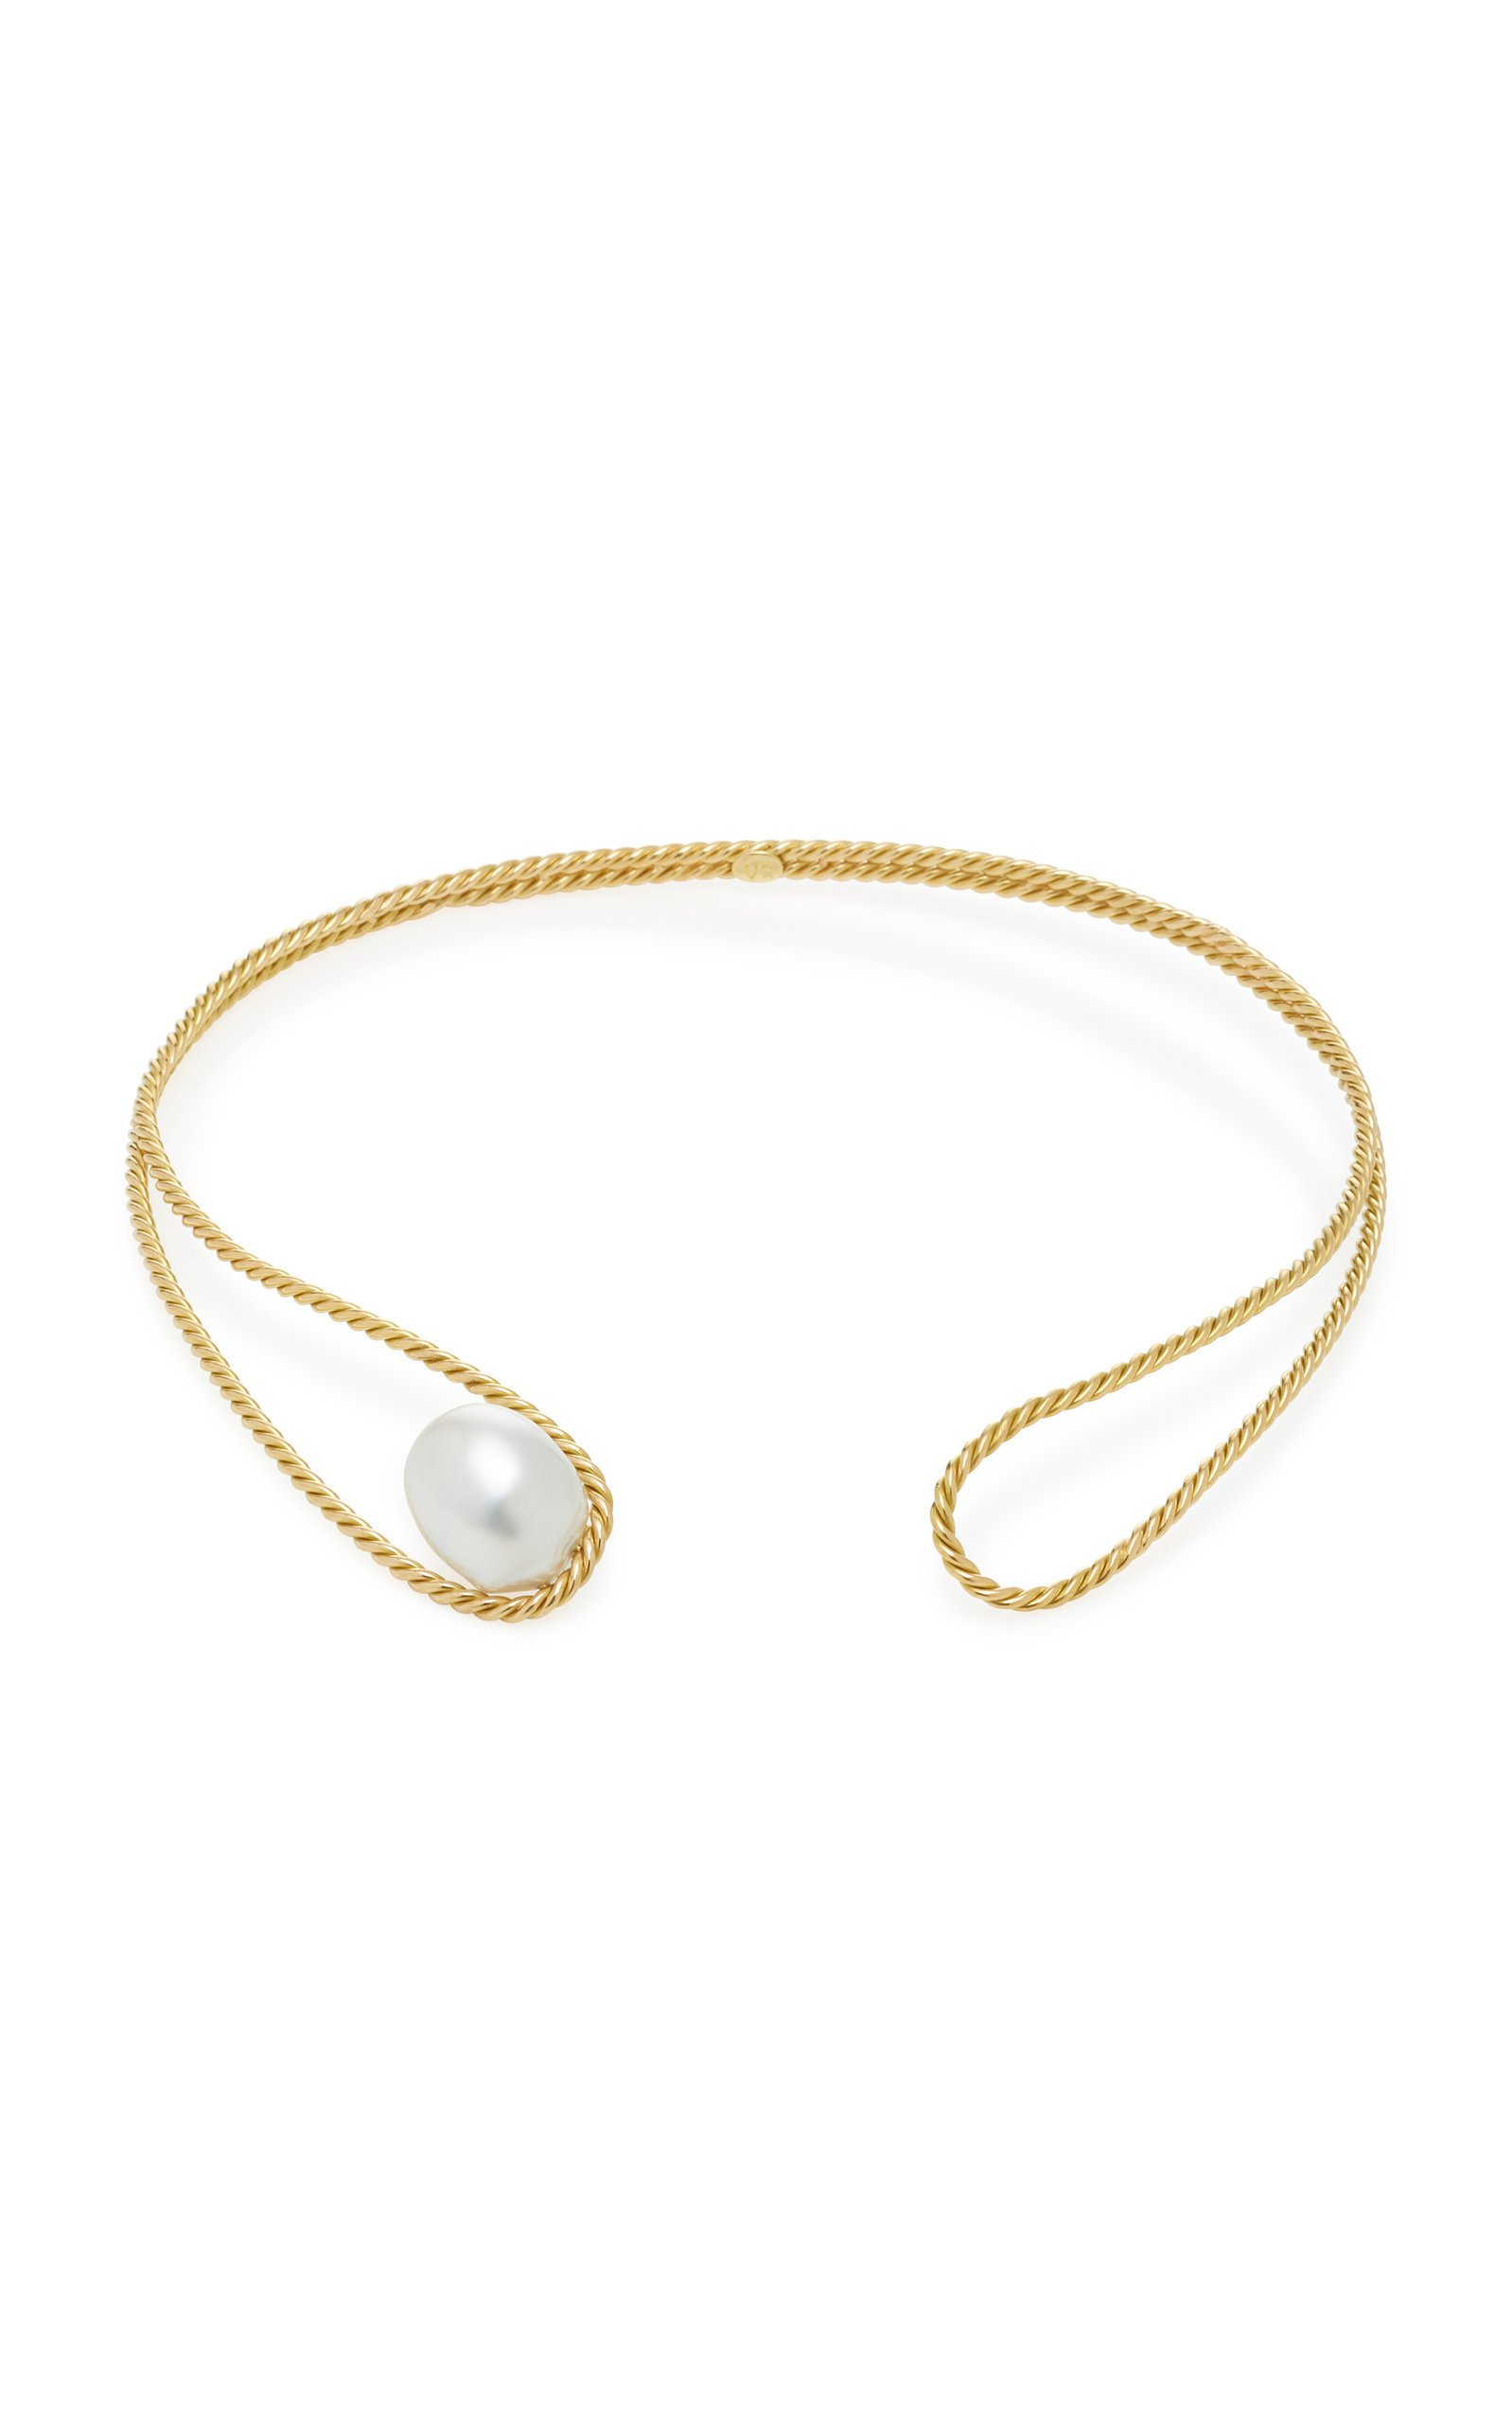 Haute Victoire 18K Gold And Pearl Choker